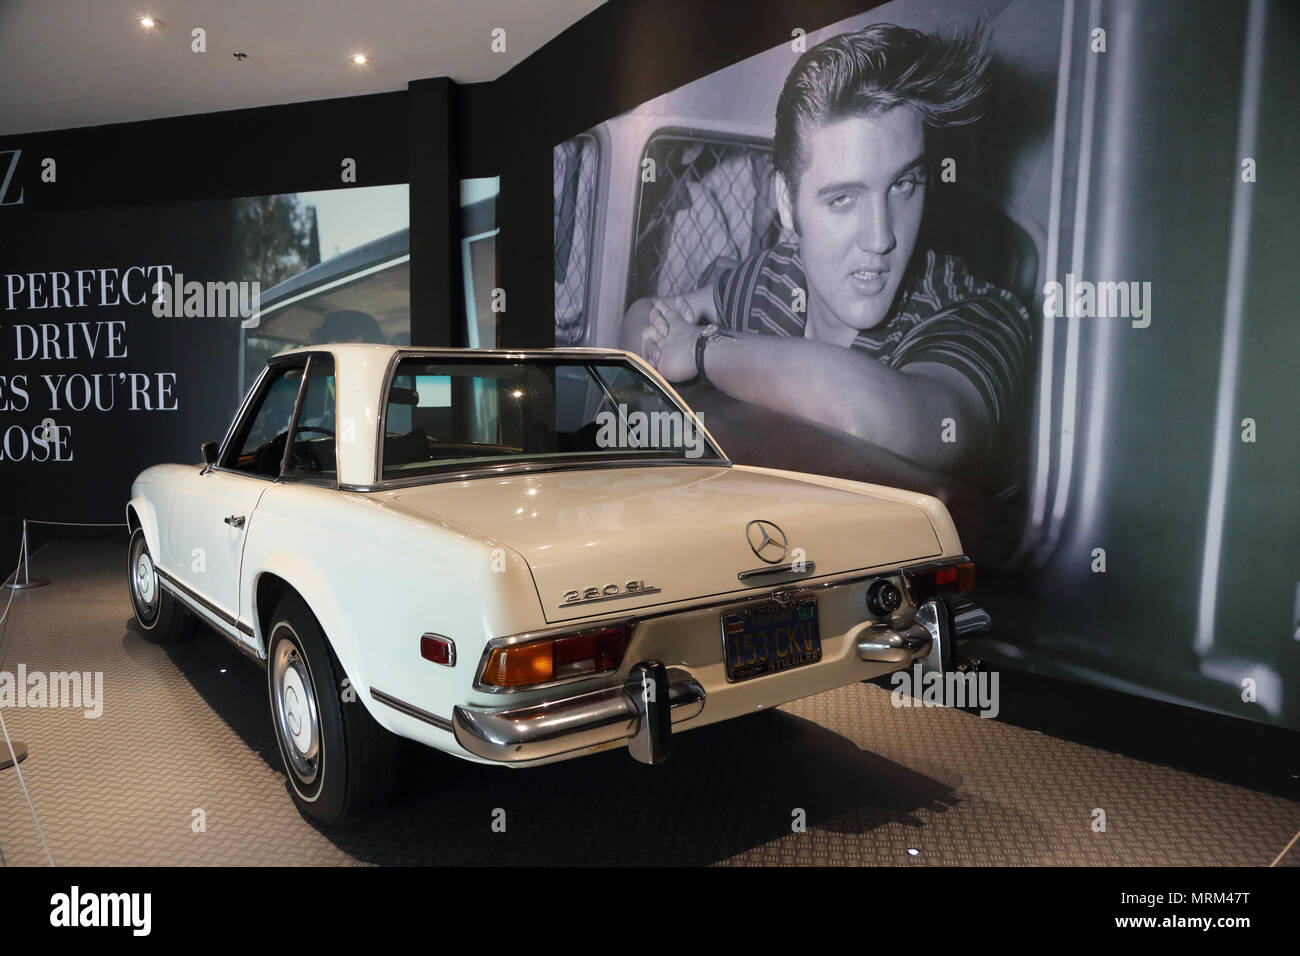 Elvis' Mercedes Benz 280 SL Roadster display inside Presley Motors Automobile Museum in Graceland the home of Elvis Presley.Memphis,Tennessee.USA - Stock Image